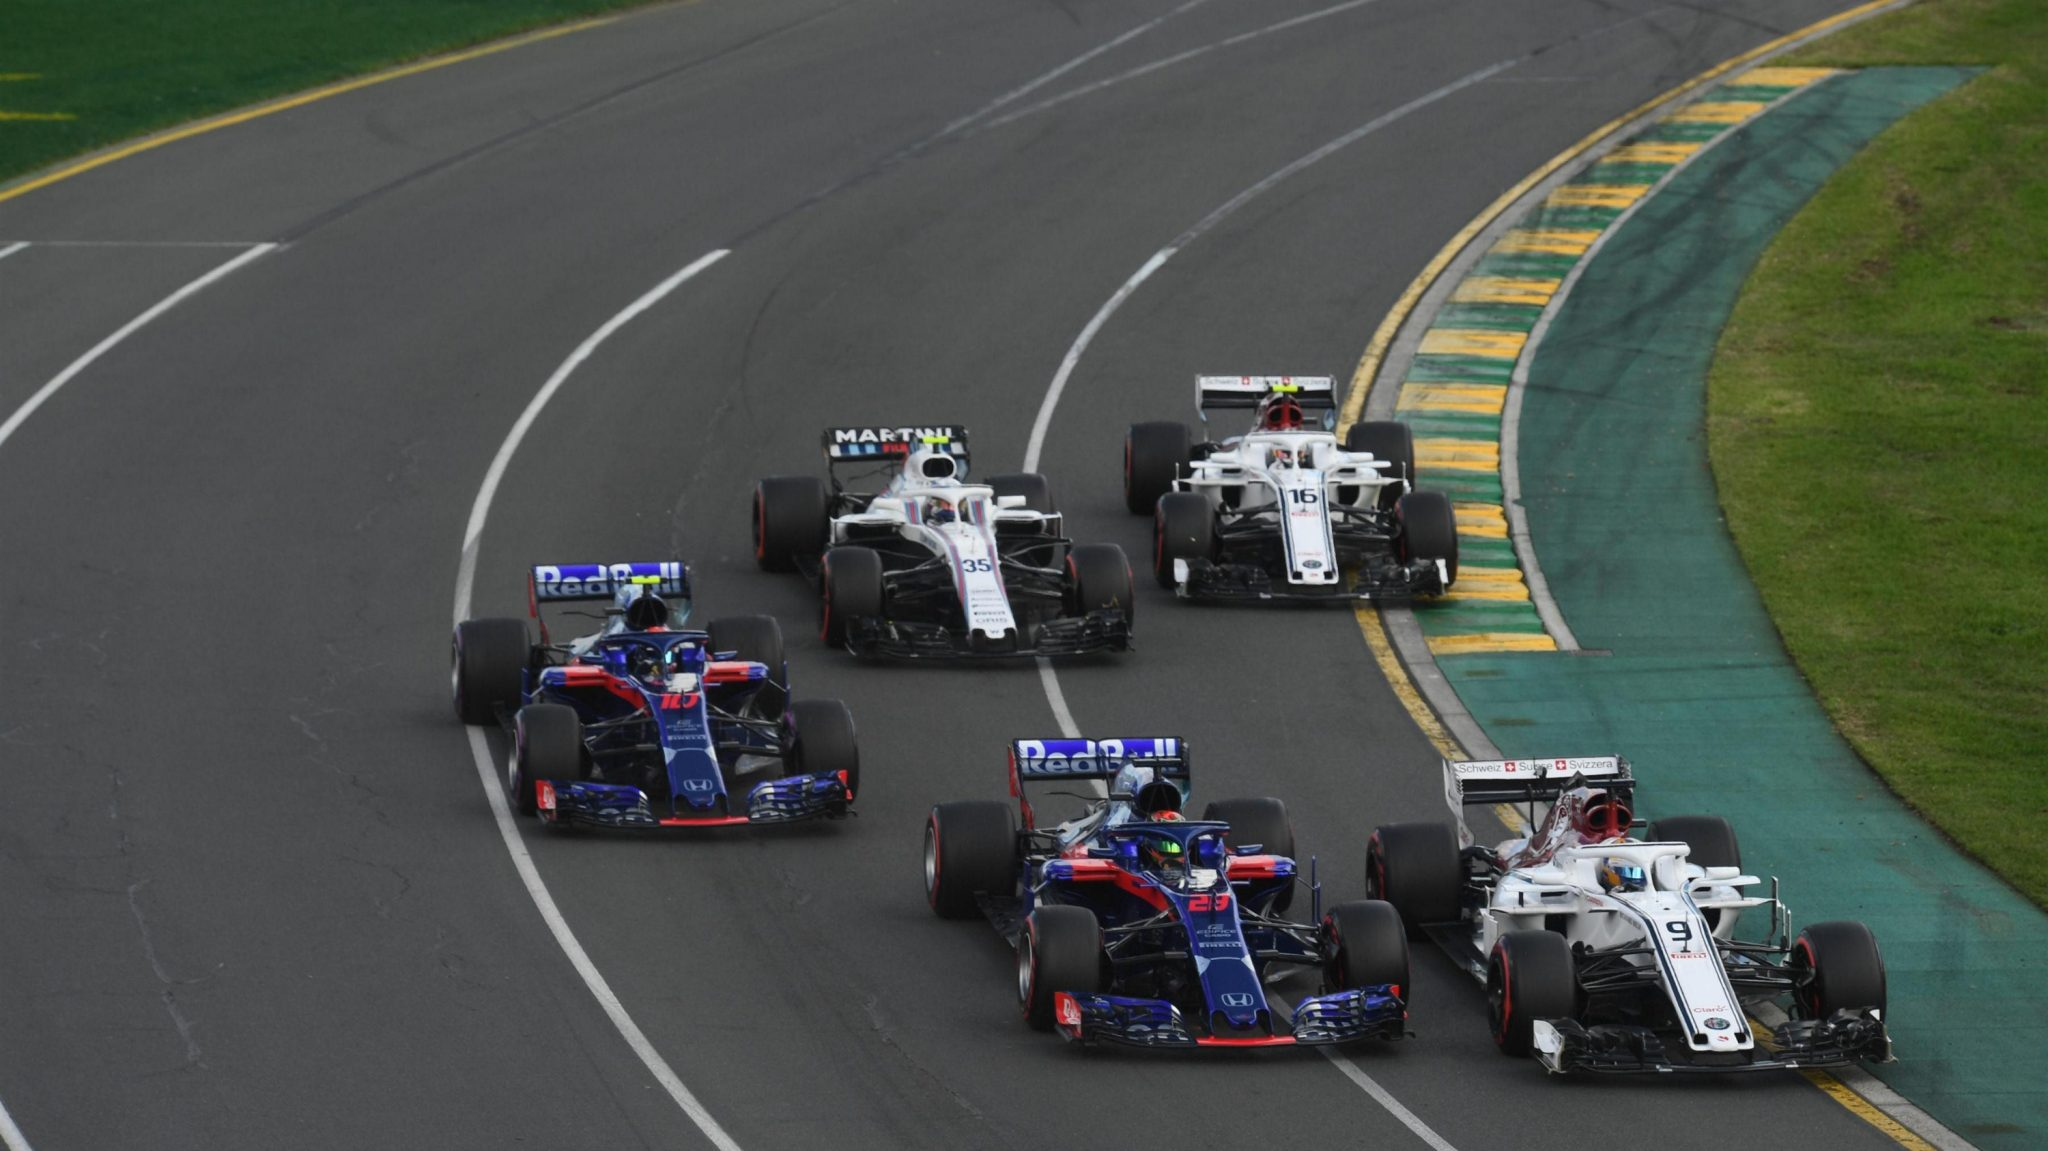 https://www.formula1.com/content/fom-website/en/latest/features/2018/3/gallery--best-images-from-australia/_jcr_content/featureContent/manual_gallery_96270764/image29.img.2048.medium.jpg/1521957329536.jpg